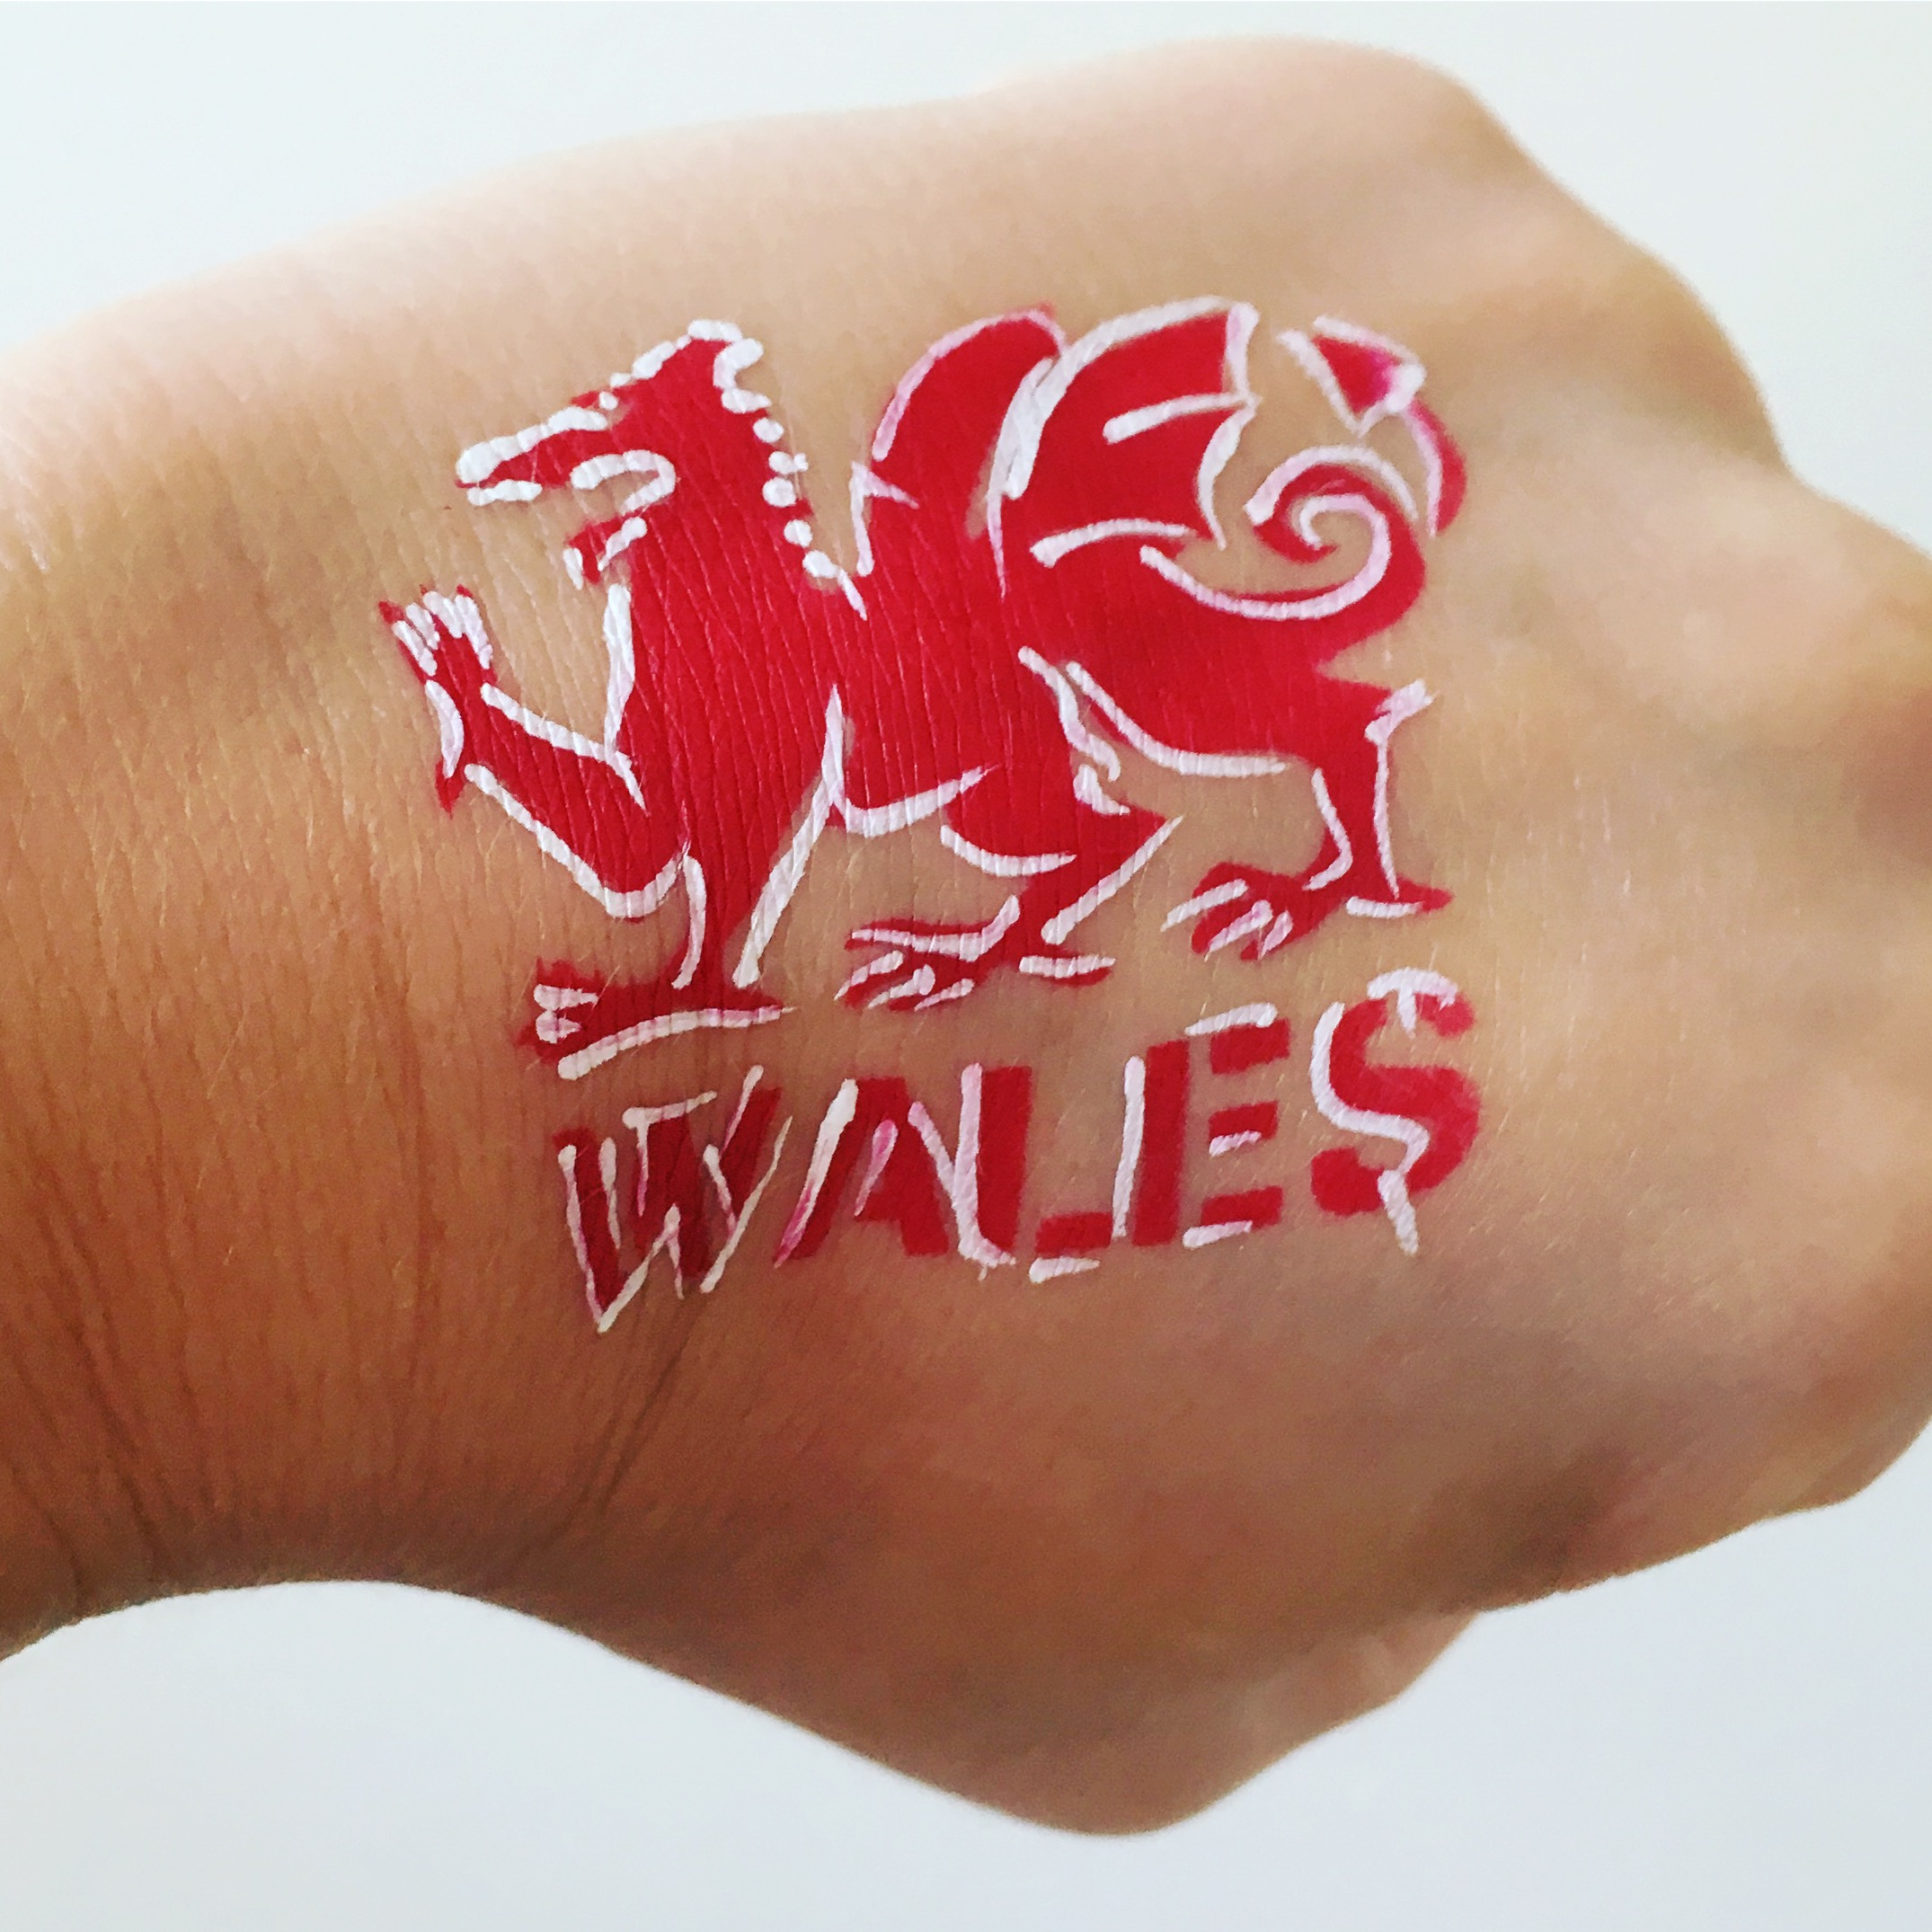 Wales rugby hand paint